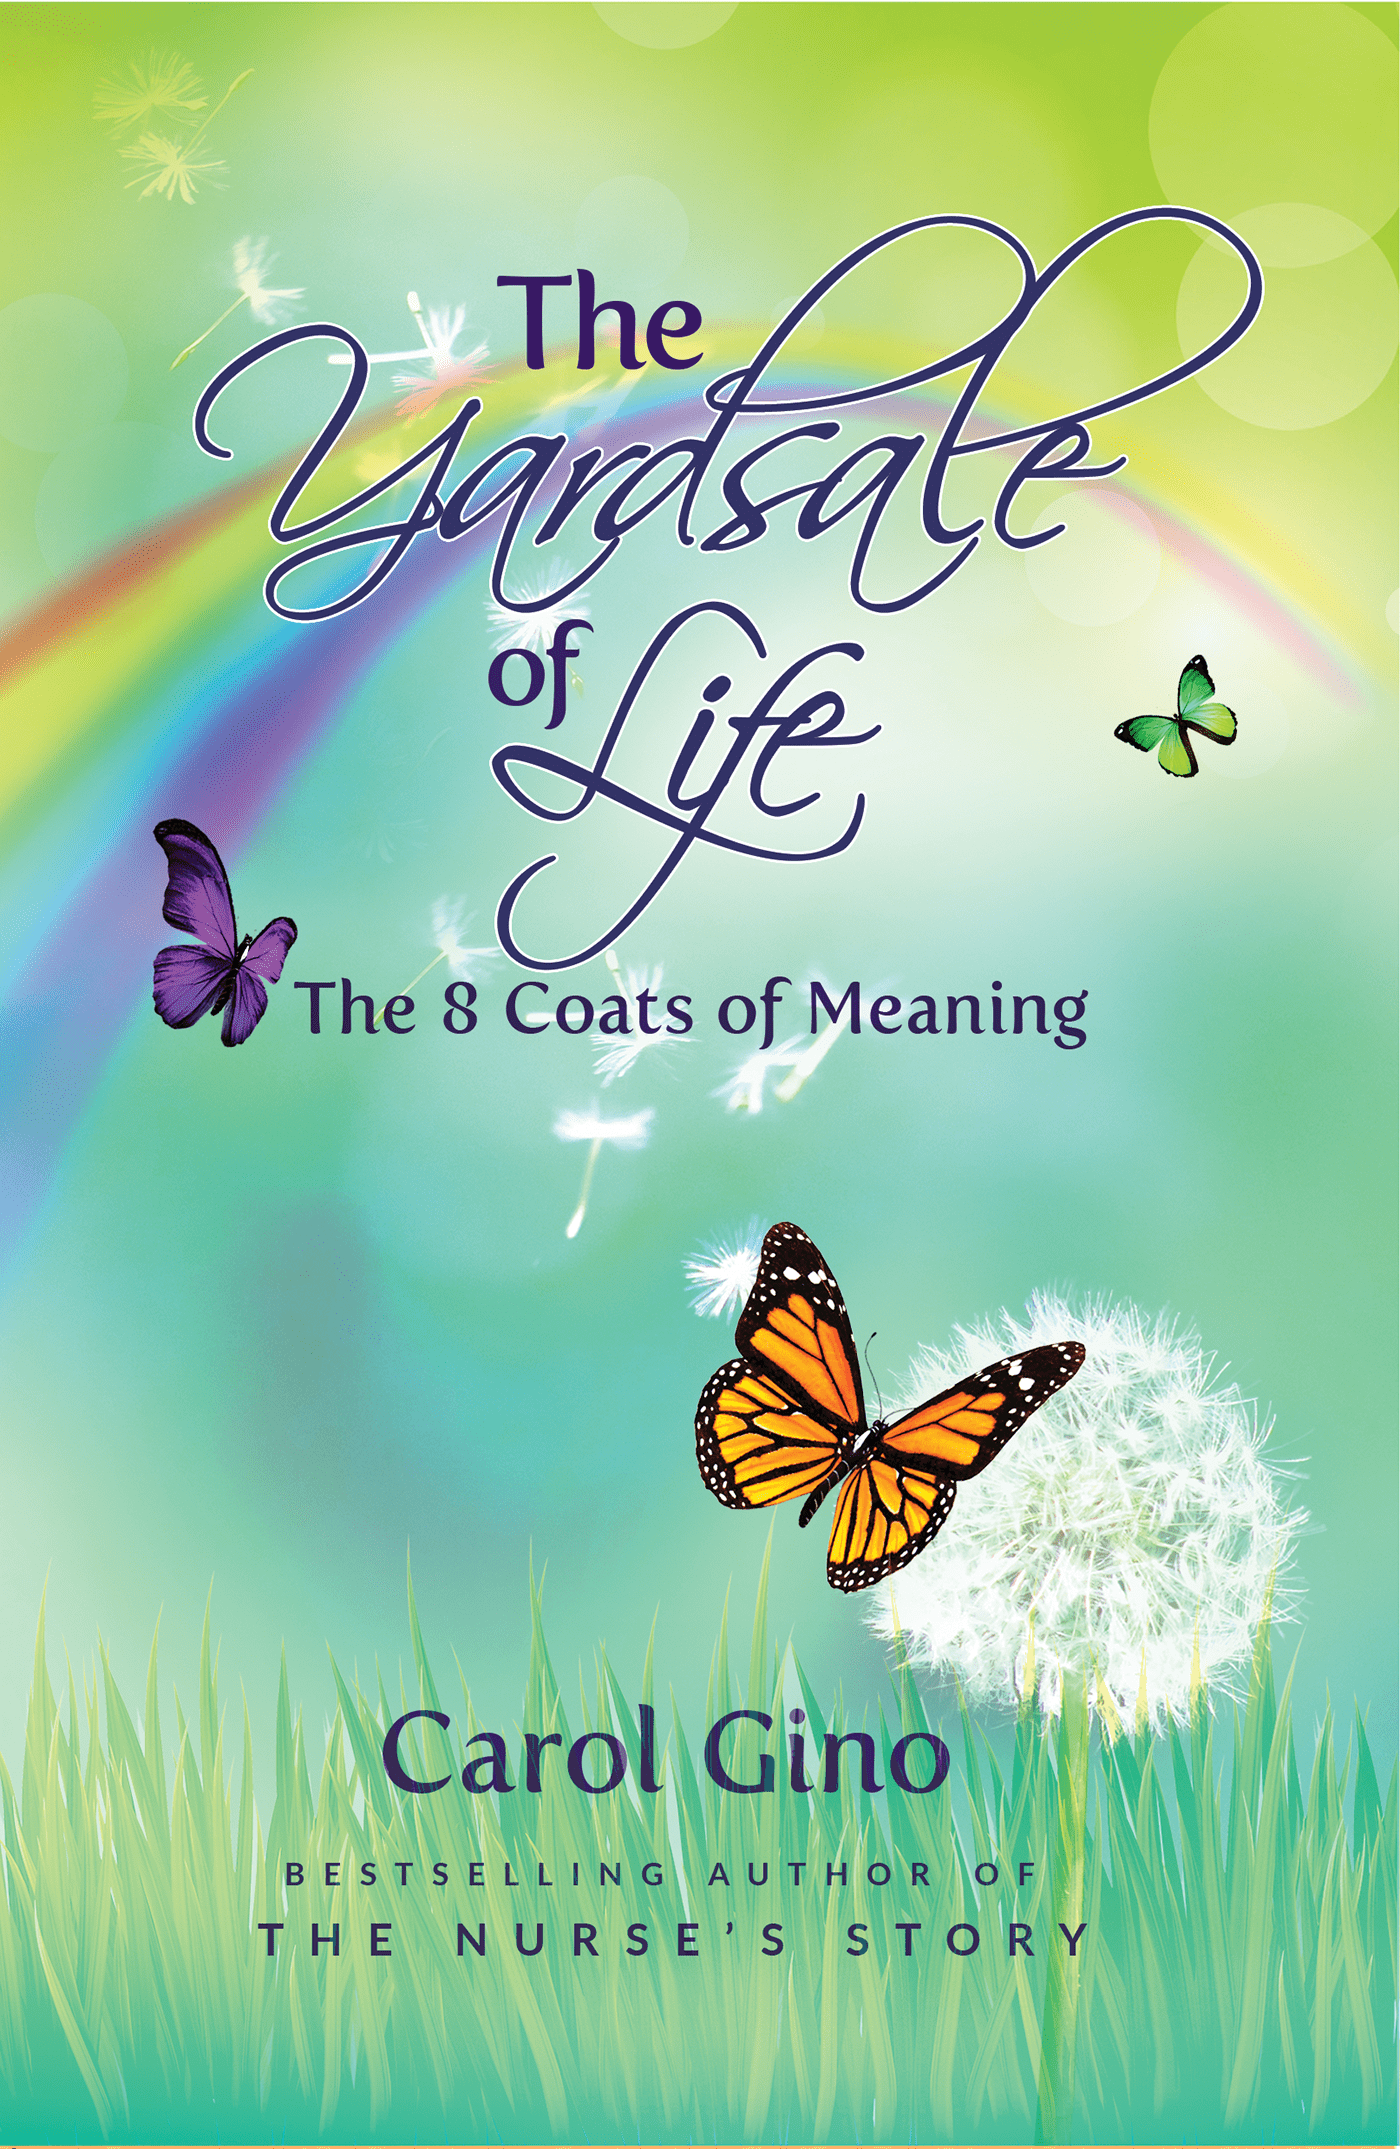 The Yardsale of Life by Carol Gino